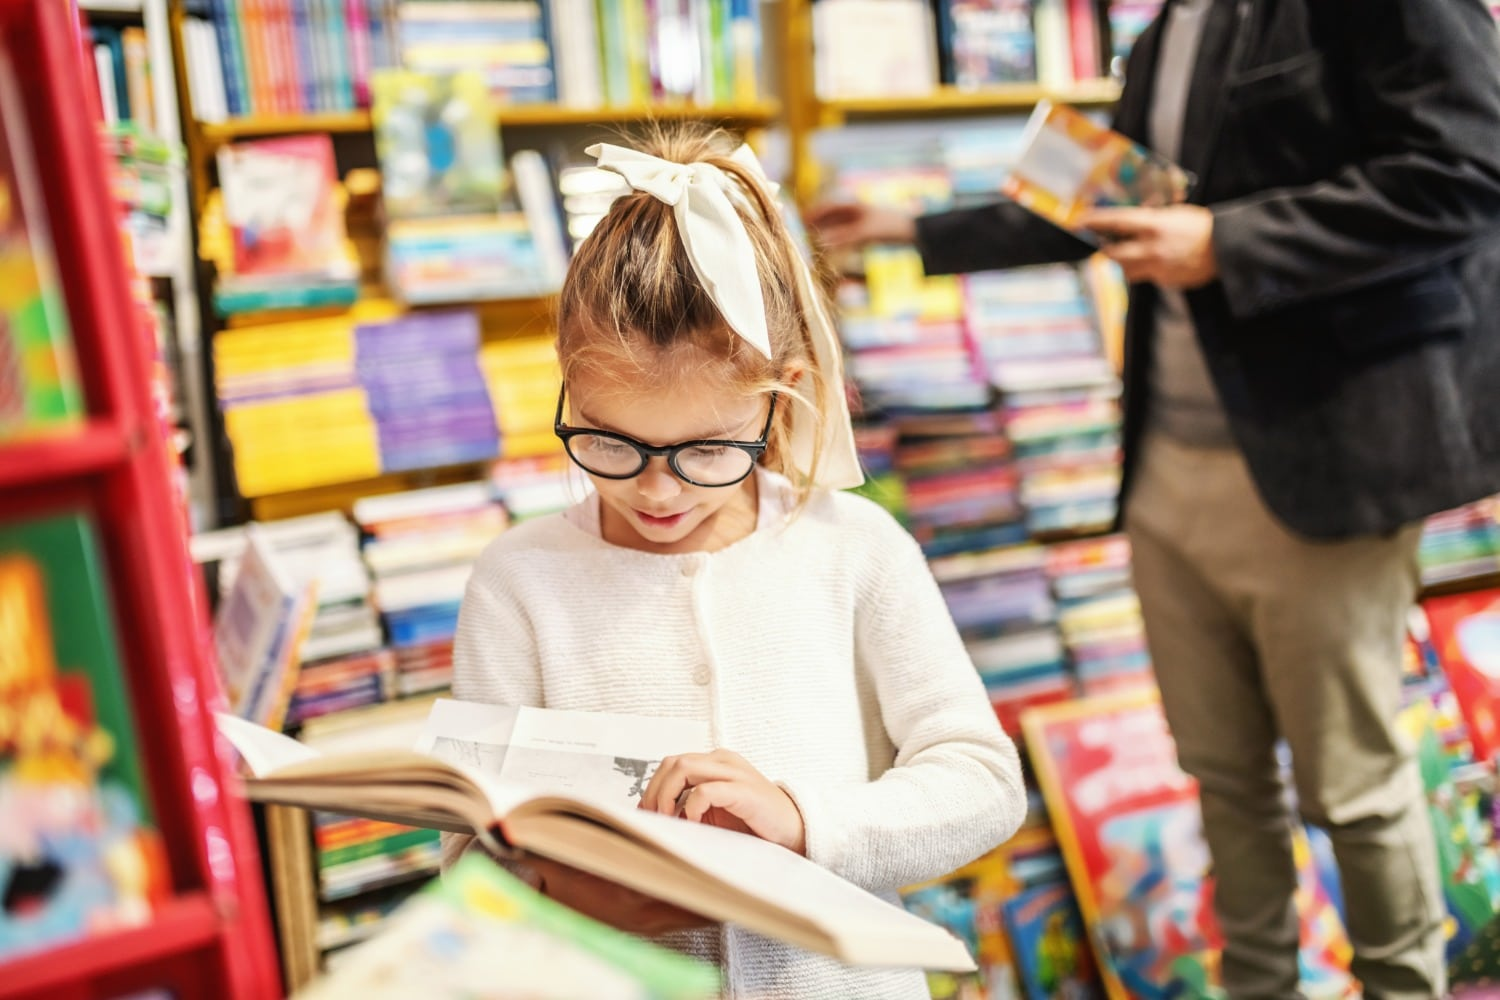 Young Girl Reading Book in Bookstore